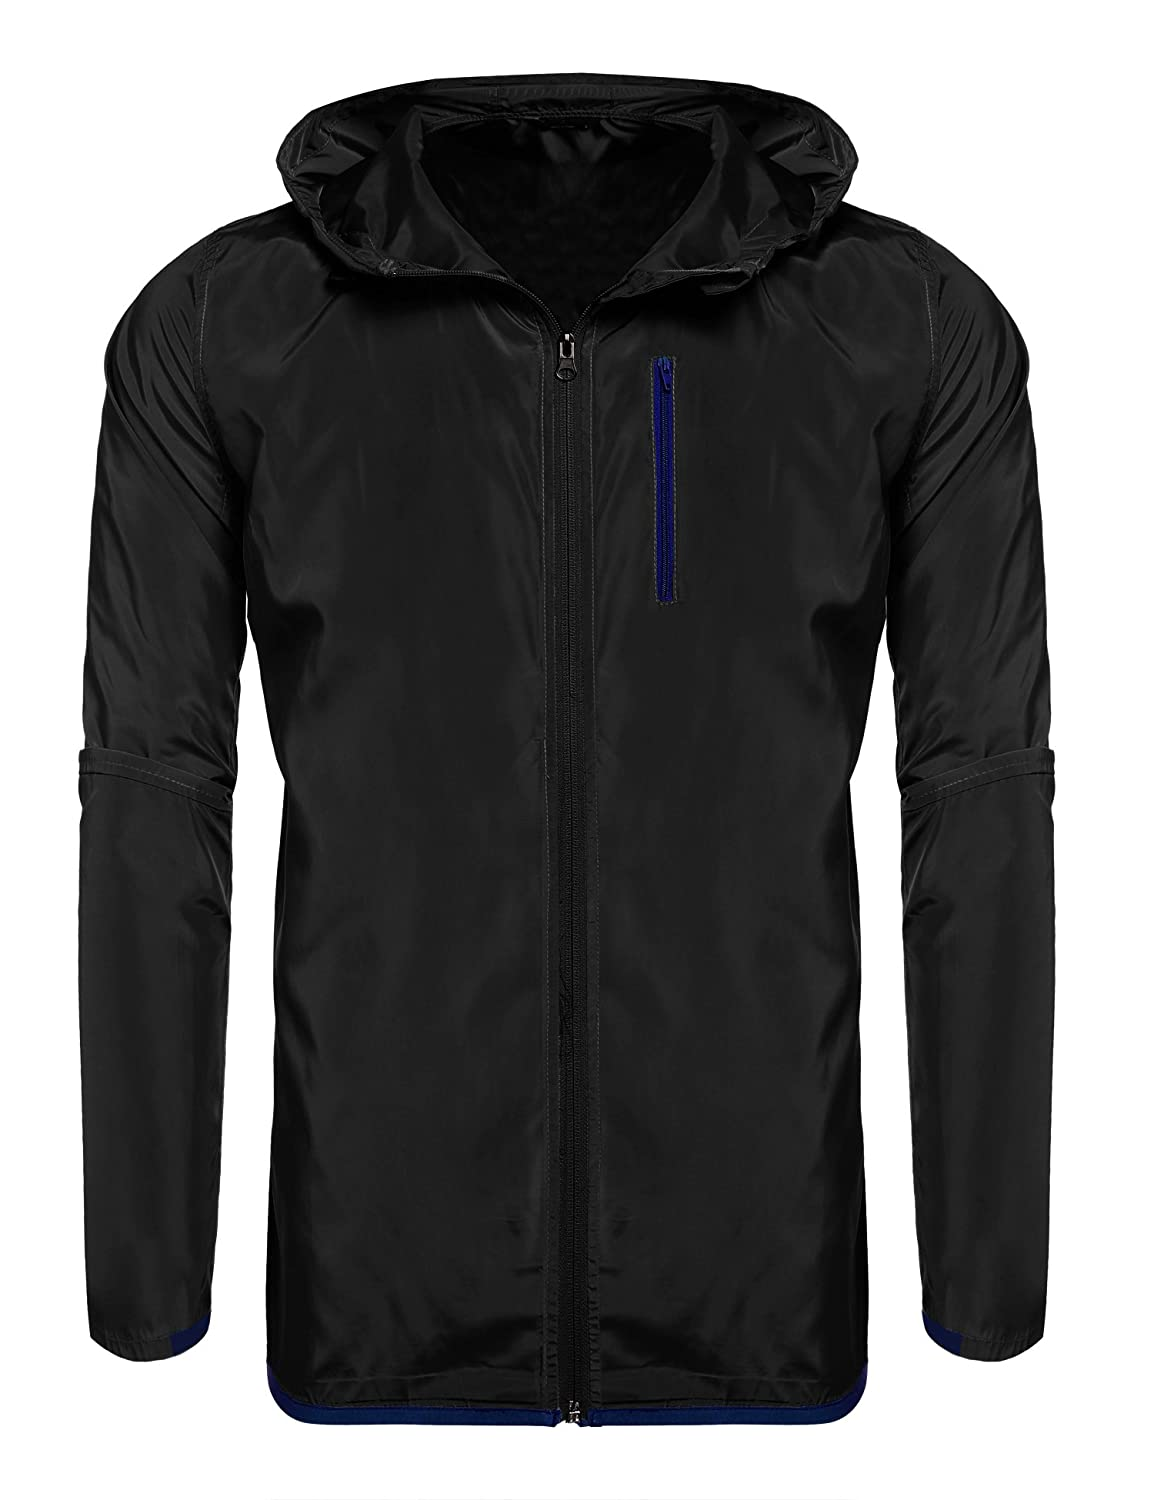 Jinidu Men's Lightweight Outdoor Running Jacket Athletic Track Jackets Windbreaker 16580712